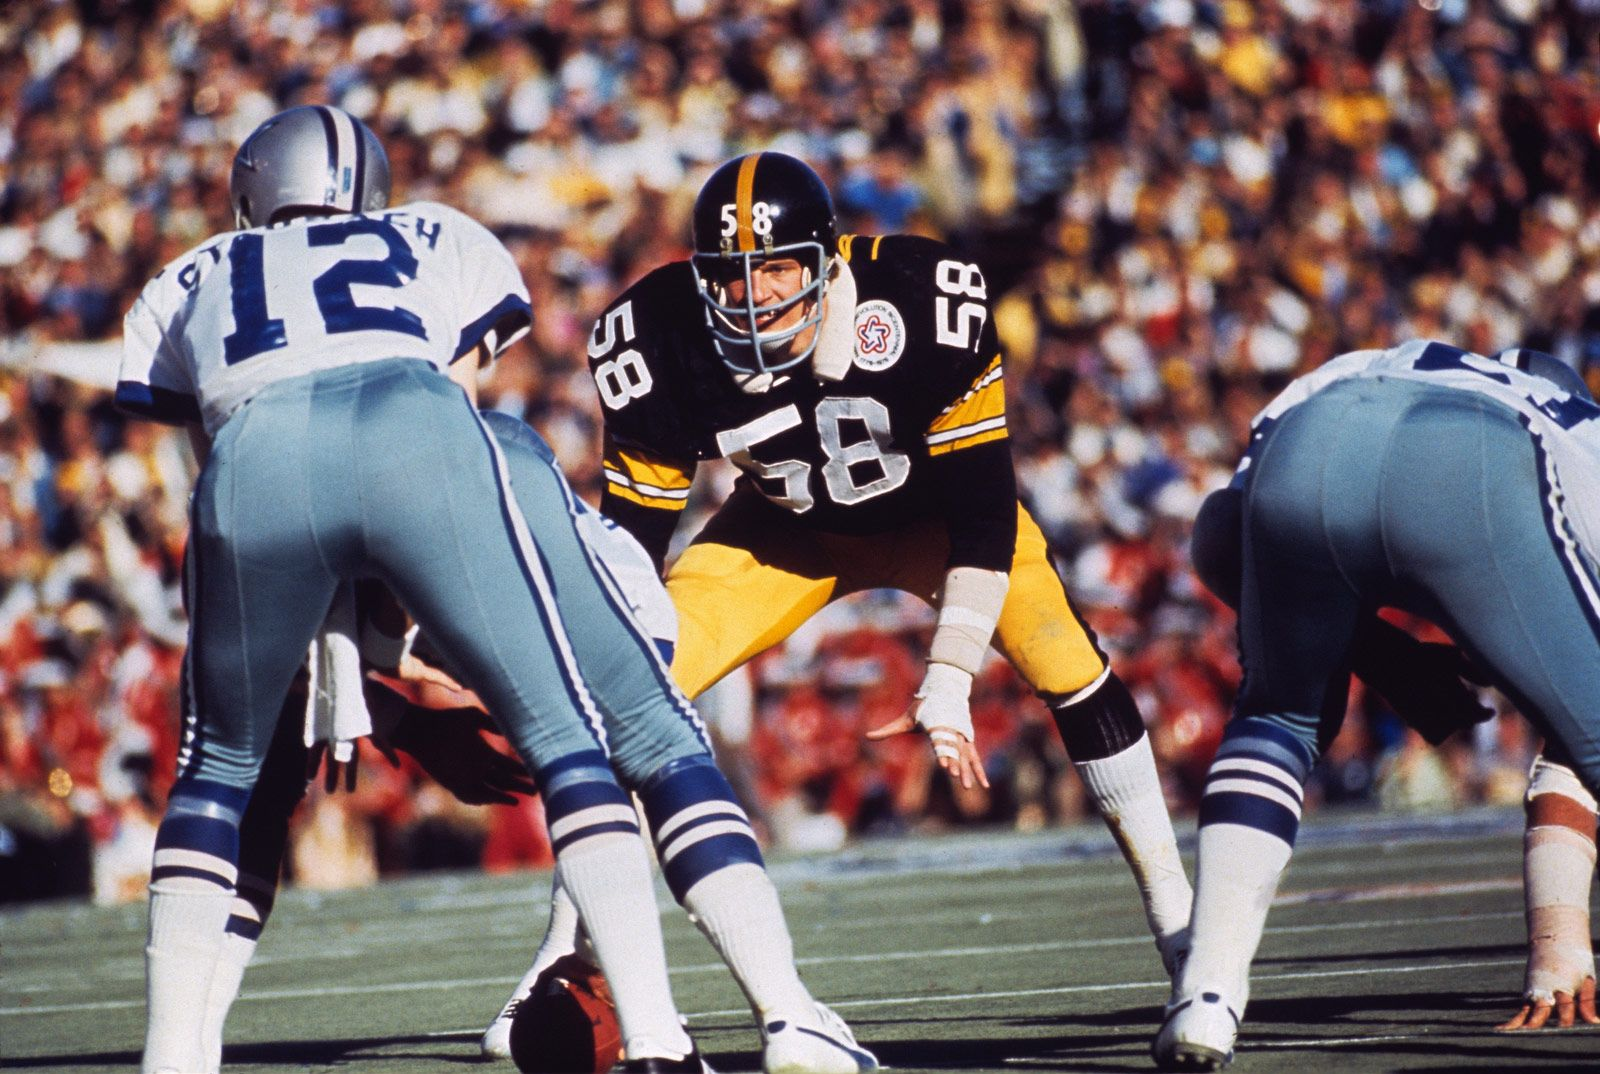 Pin by Spencer Gorsuch on Vintage NFL   Pittsburgh ...